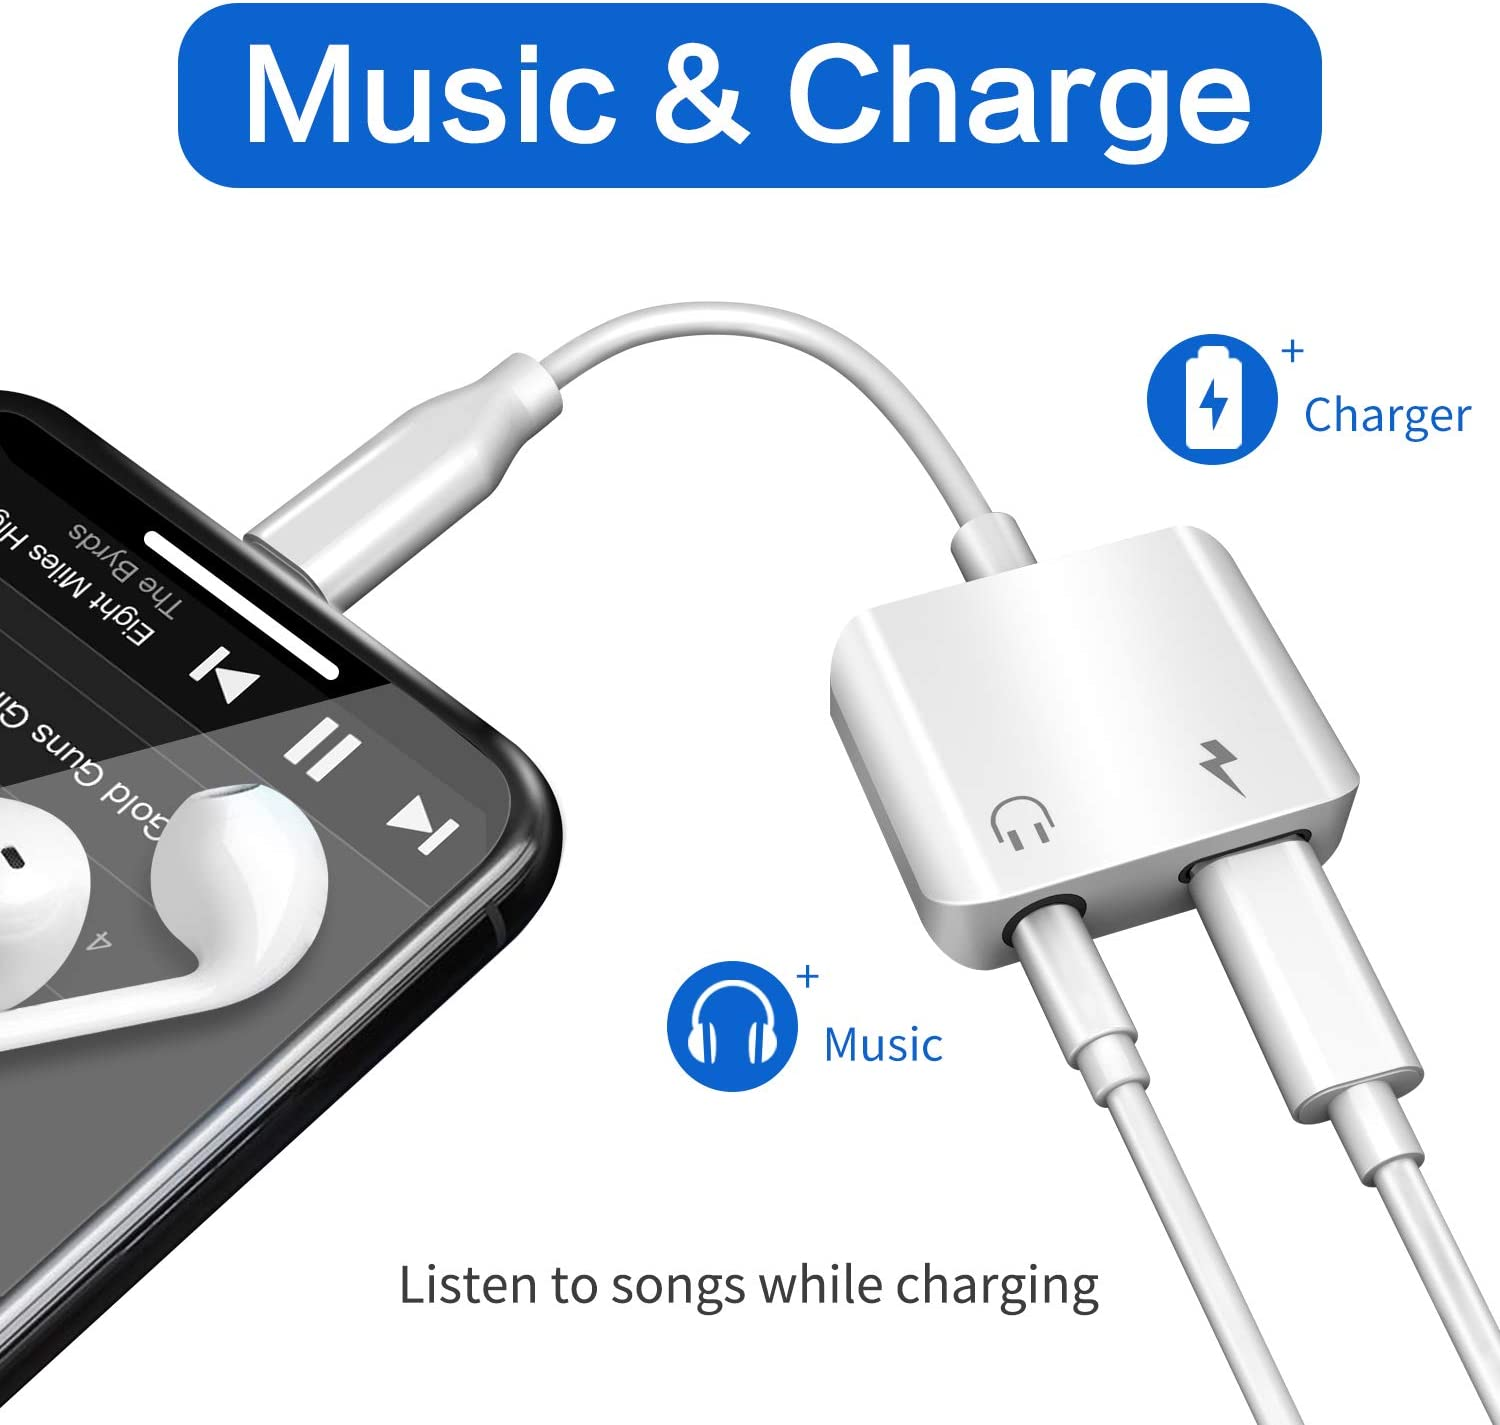 Cdyle Headphone Adapter for iPhone 11 Charging Cable for iPhone 7//7 Plus 8//8 Plus//X//XR//XS Max Audio Jack to 3.5mm Earphone Adaptor Audio Charge Cable Dongle Extension Cord AUX Female Support All iOS